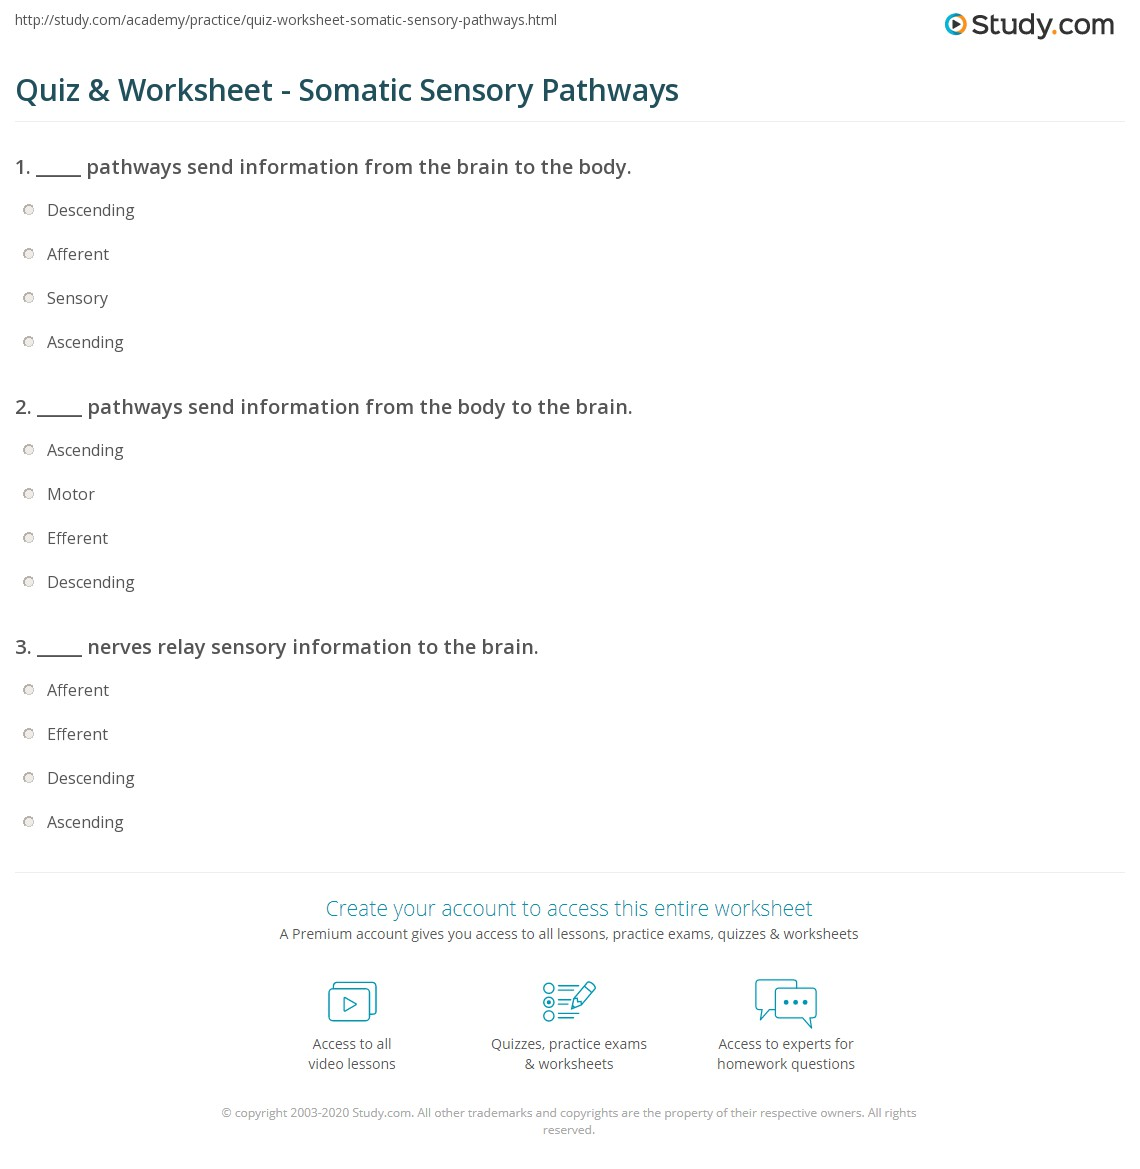 Somatic Sensory And Motor Pathways Worksheet Answers